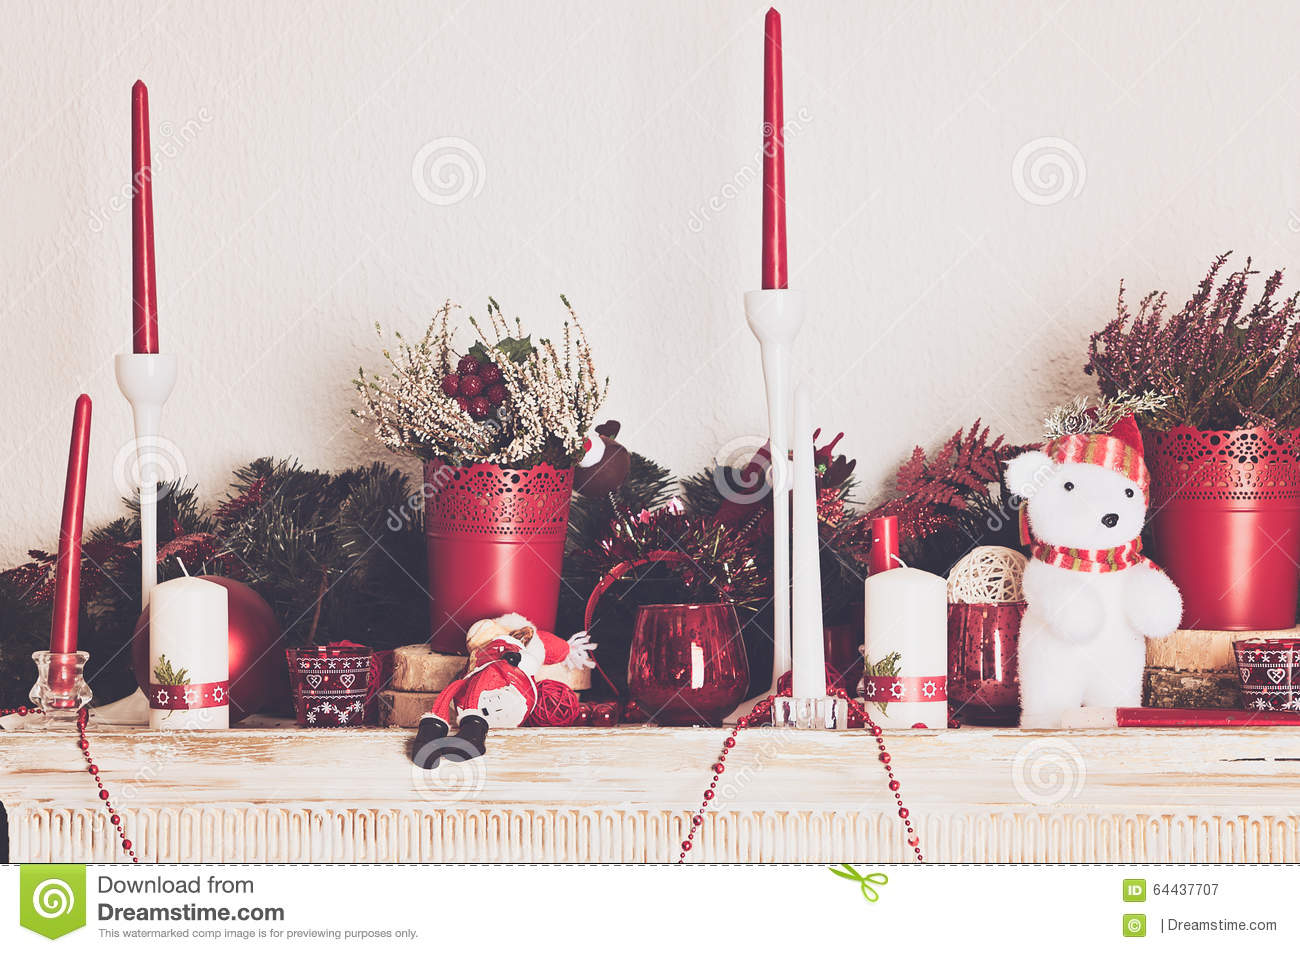 Decorare Caminetto A Natale Decorazioni Di Natale Con Le Candele Sul Caminetto Immagine Stock